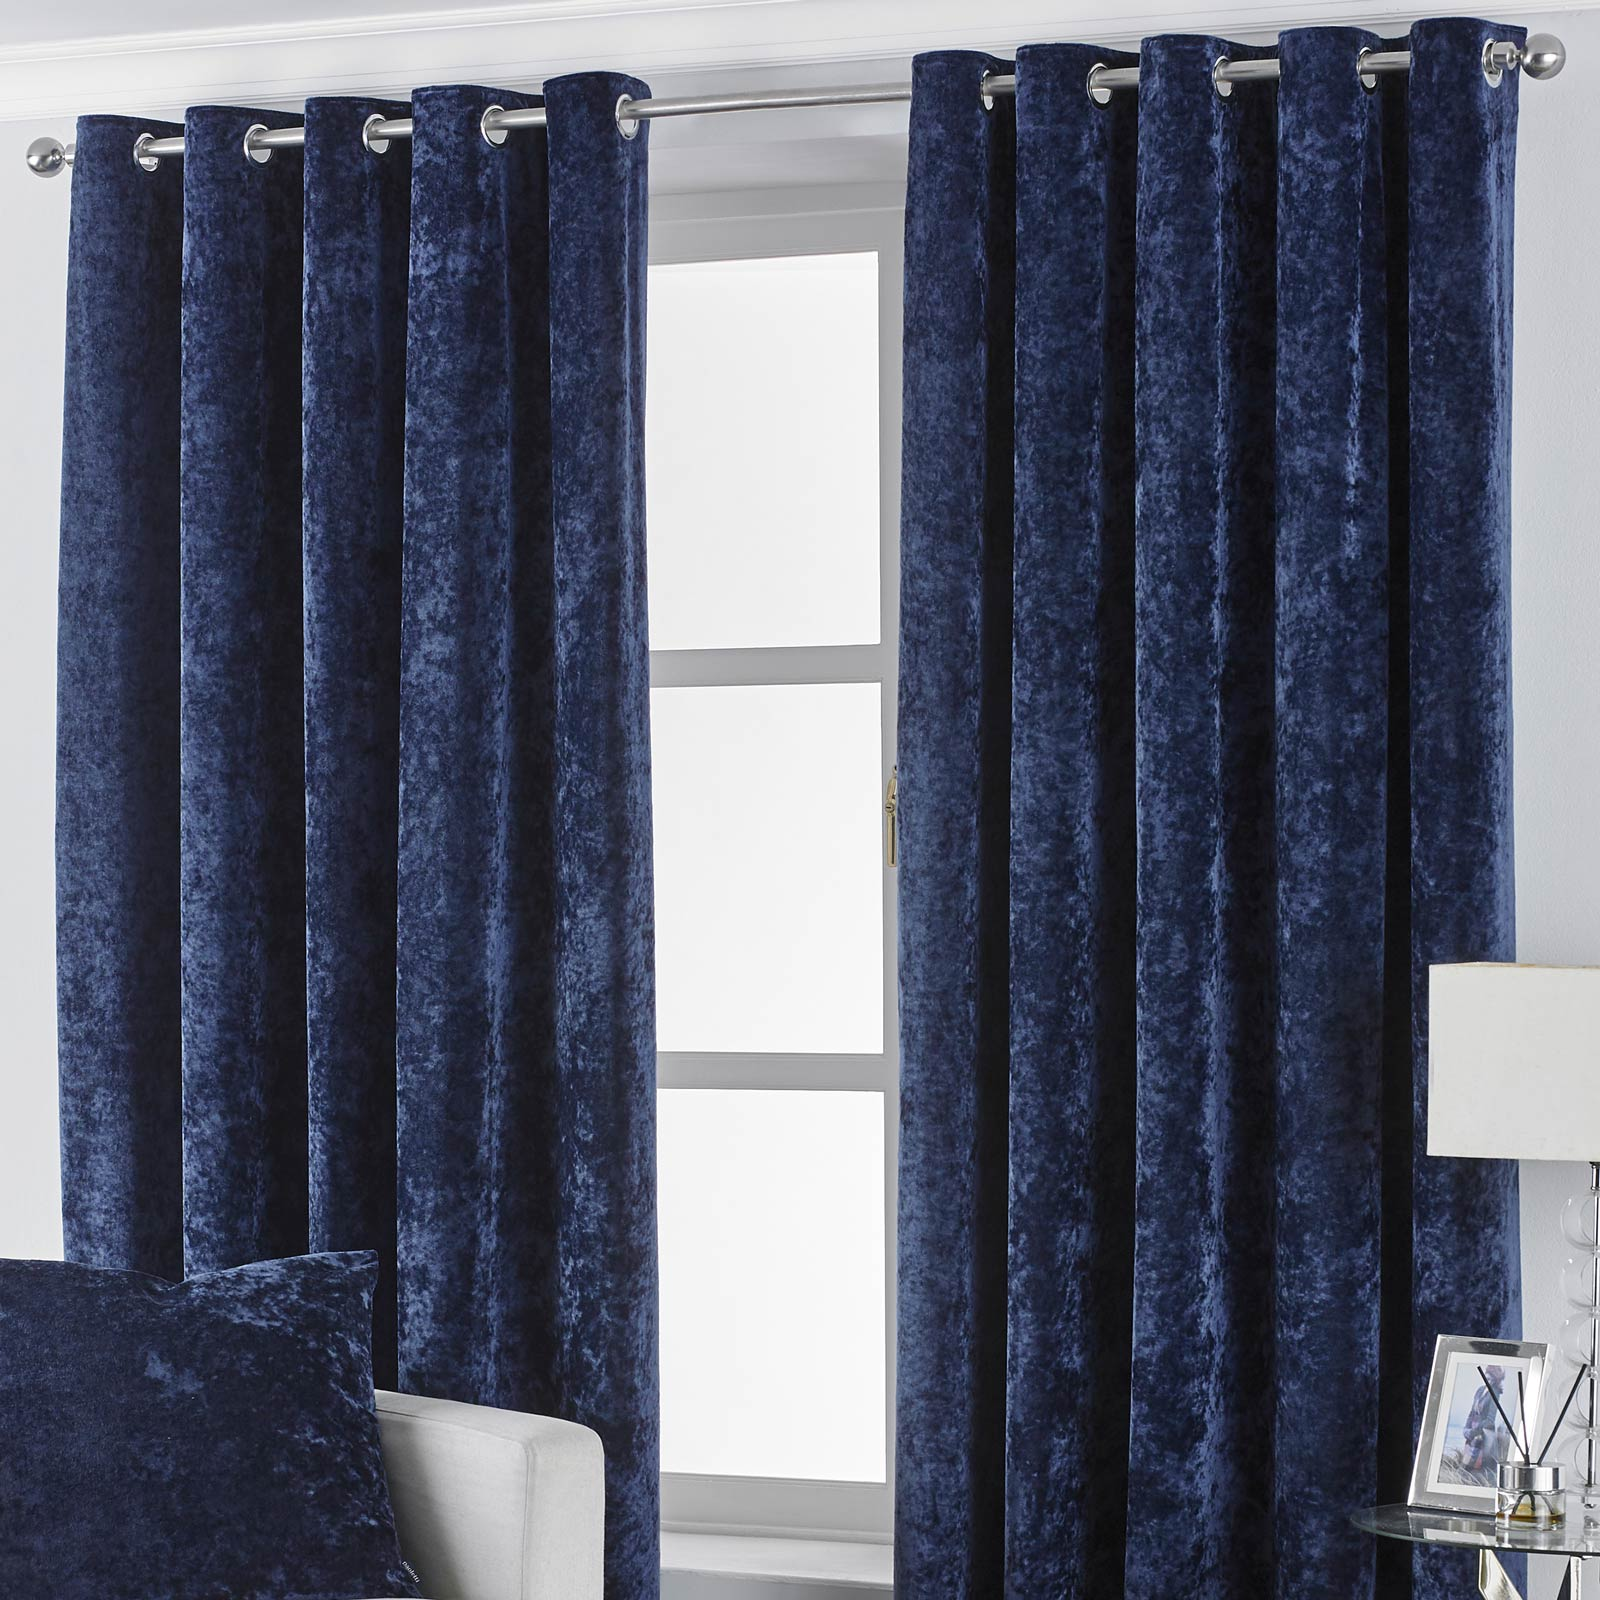 Verona Crushed Velvet Lined Eyelet Curtains Navy - 46'' x 54'' - Ideal Textiles